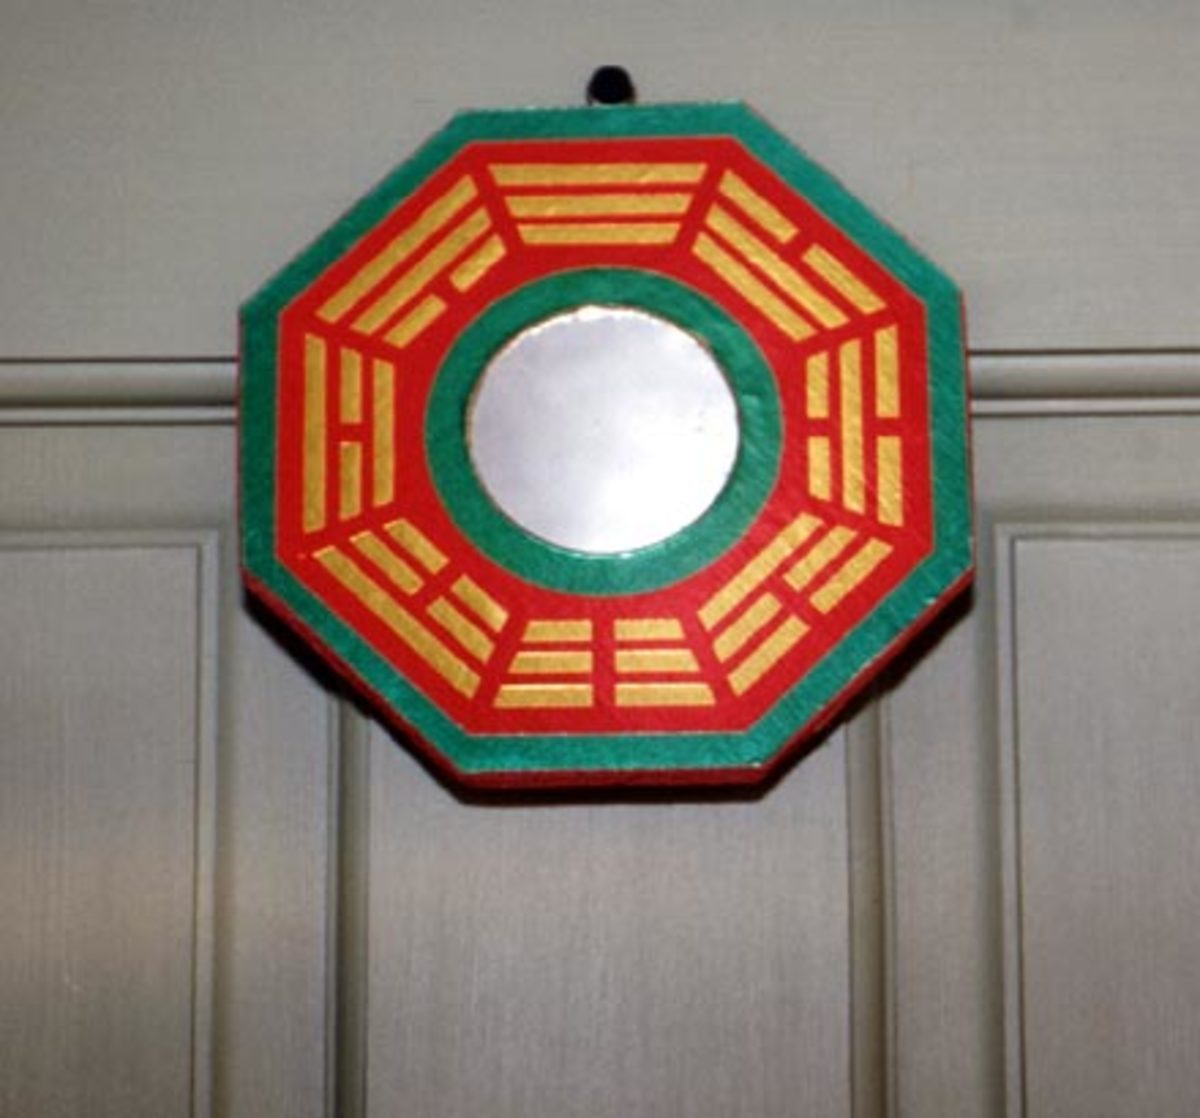 Feng Shui Bagua mirror above door.